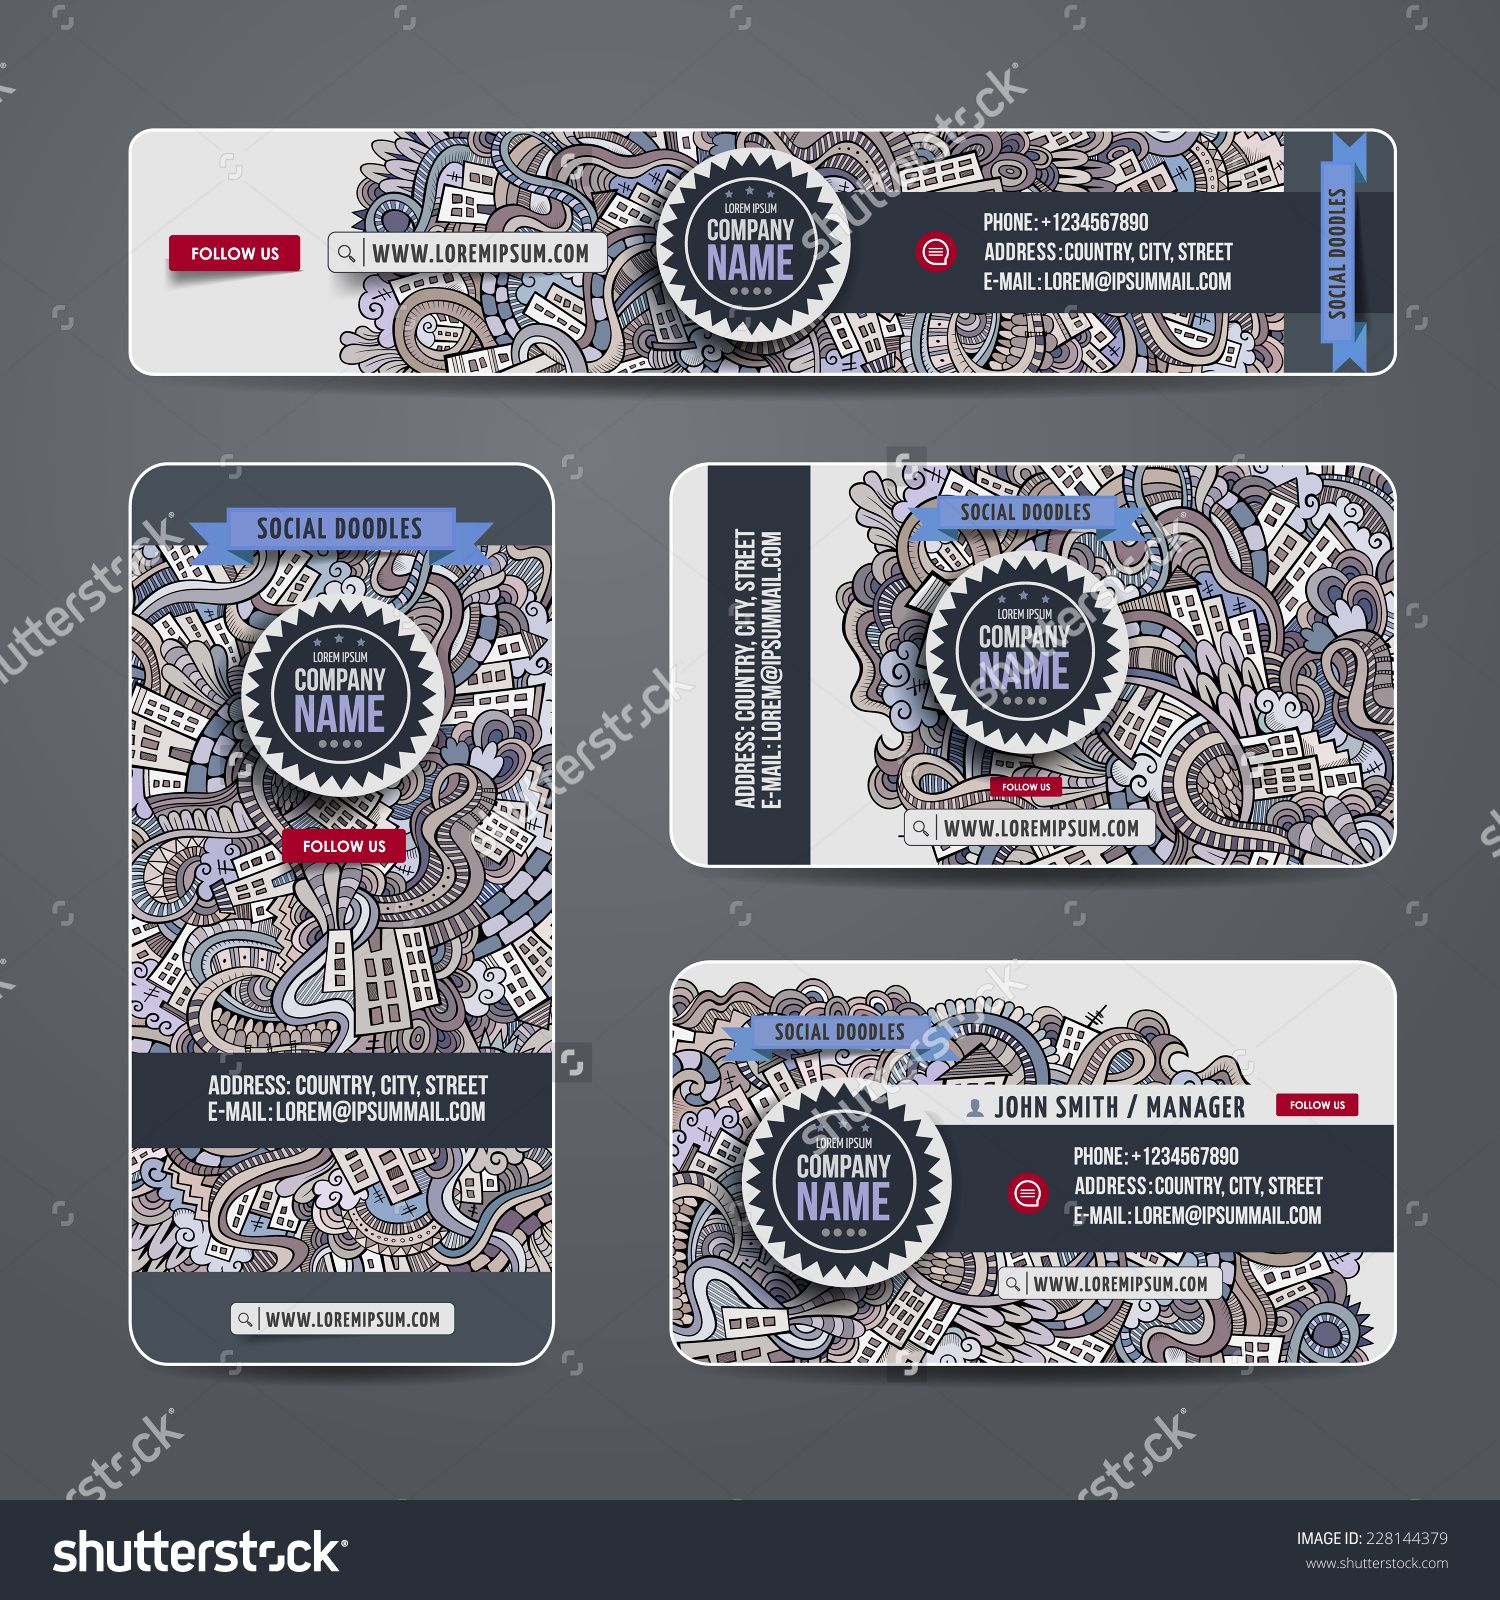 Corporate Identity Vector Templates Set With Doodles Cartoon City